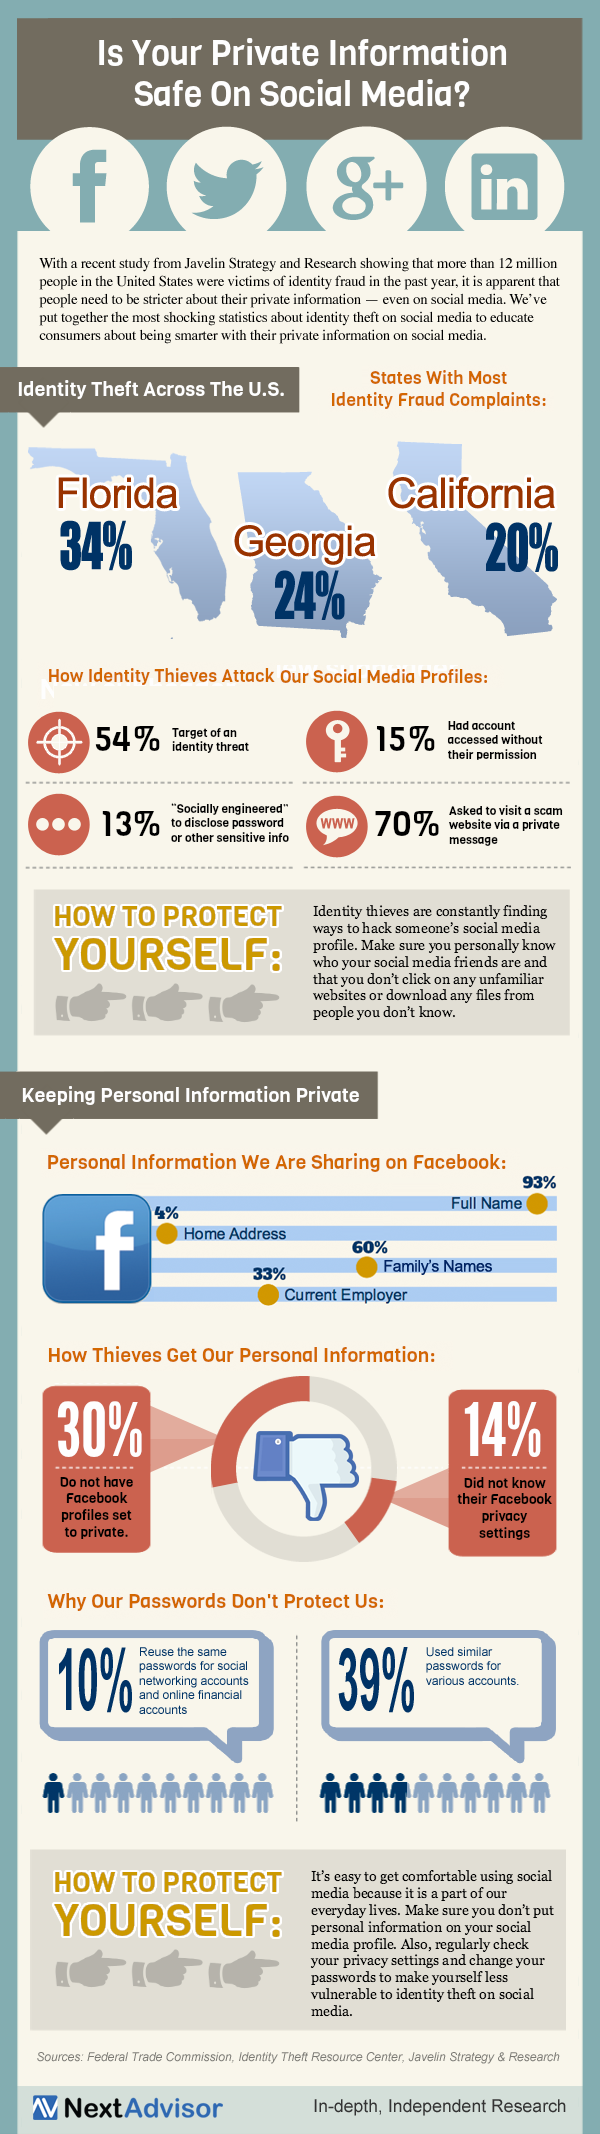 is your private information safe on social media : infographic